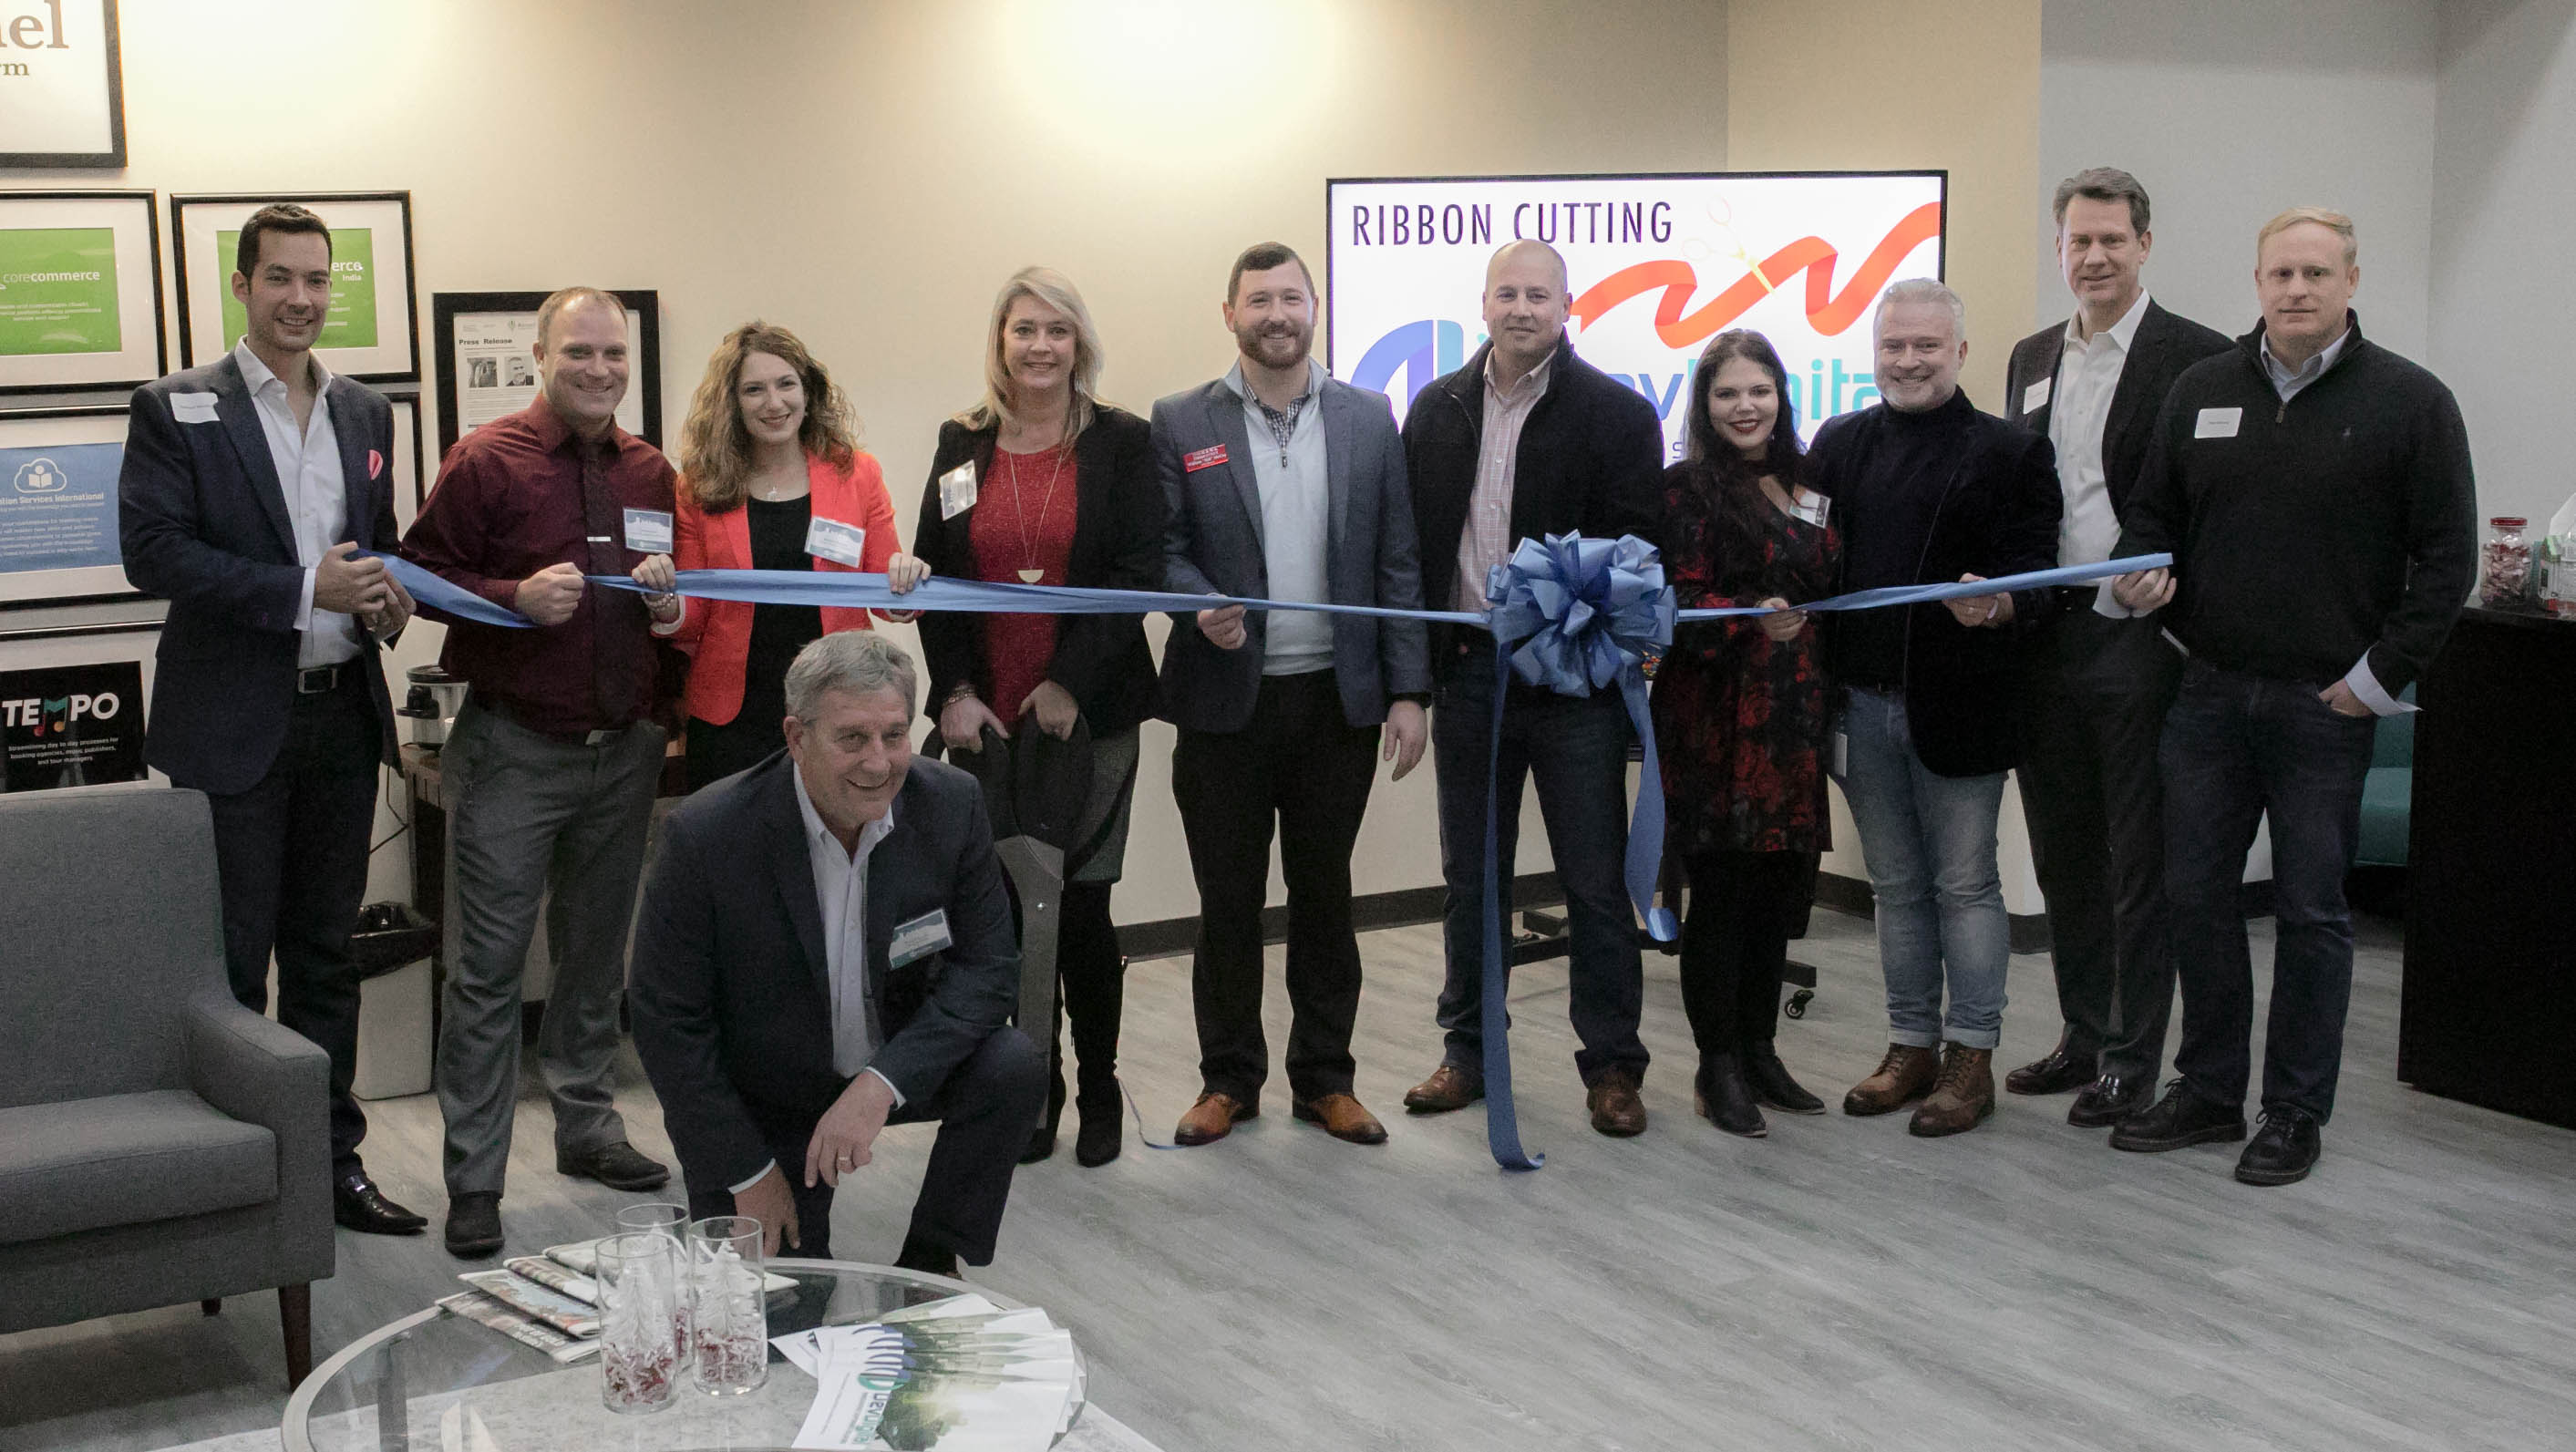 DevDigital hosts ribbon-cutting for new office!